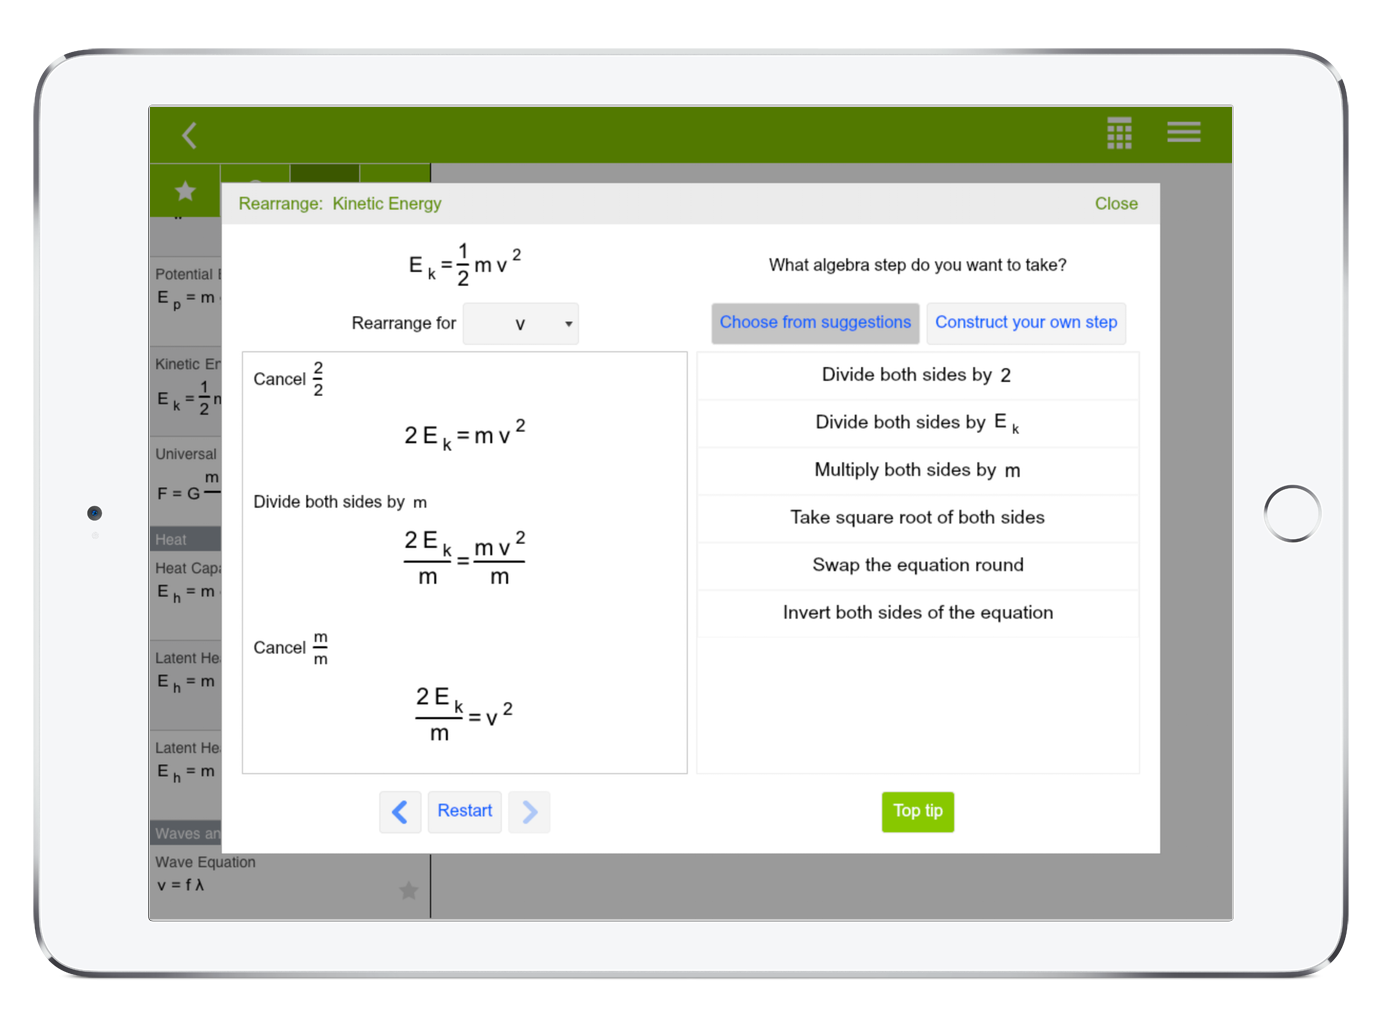 EquationLab's algebra tutor or algebra calculator helps you learn algebra and to rearrange equations in math and physics. Algebra is a vital skill to learn to succeed and get great results in high school physics and math.